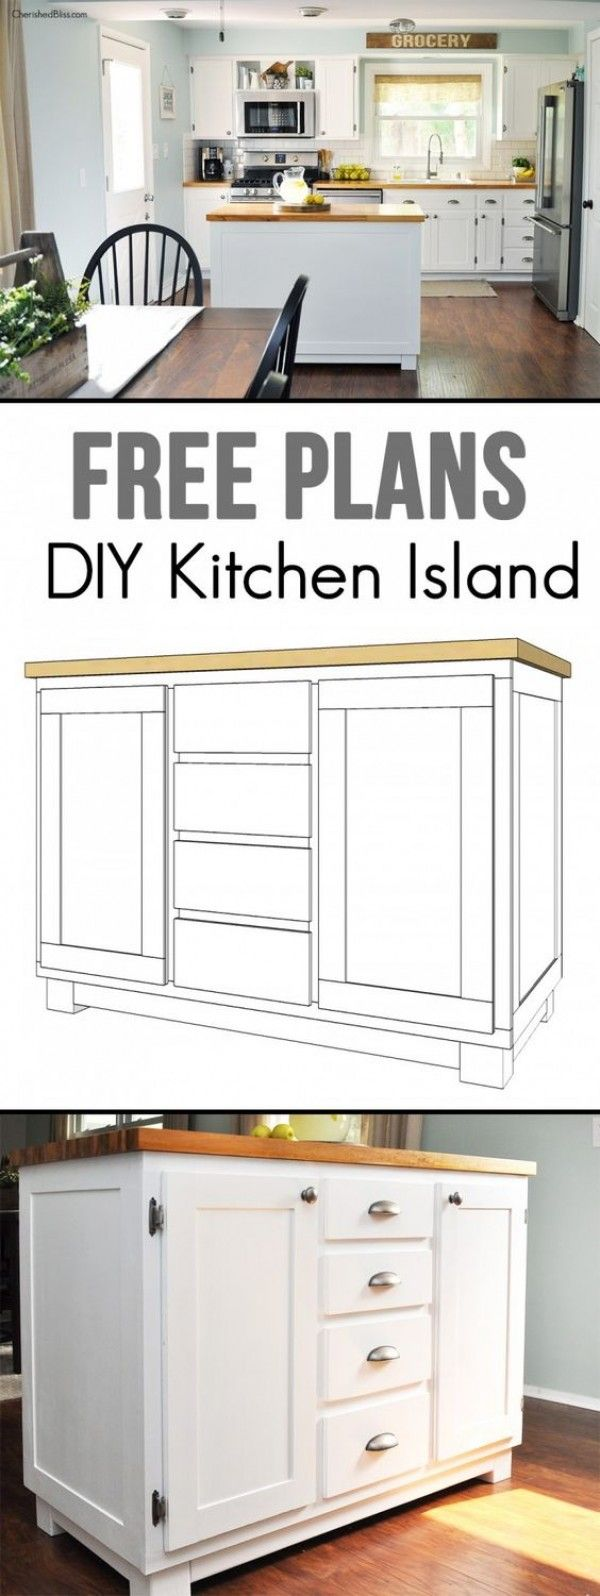 Check out the tutorial on how to build a DIY kitchen island @istandarddesign